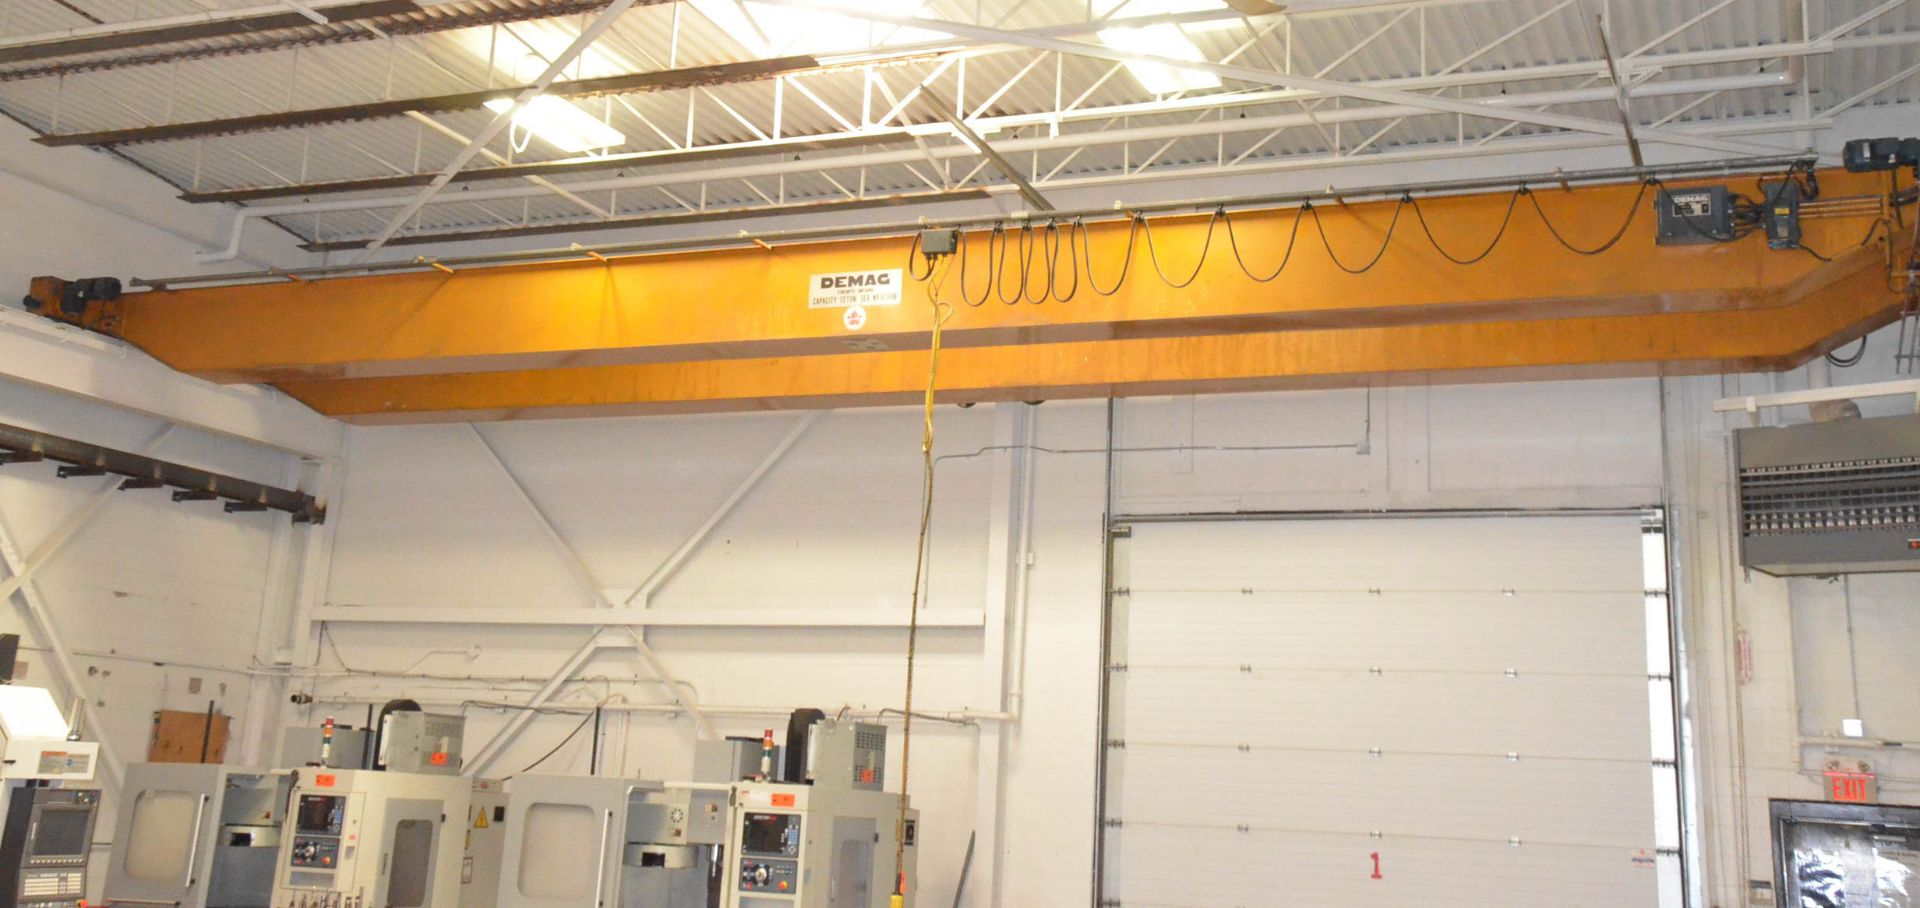 DEMAG 10TON CAPACITY DOUBLE GIRDER TOP-RUNNING OVERHEAD BRIDGE WITH APPROX. 47' SPAN, 20' HEIGHT (